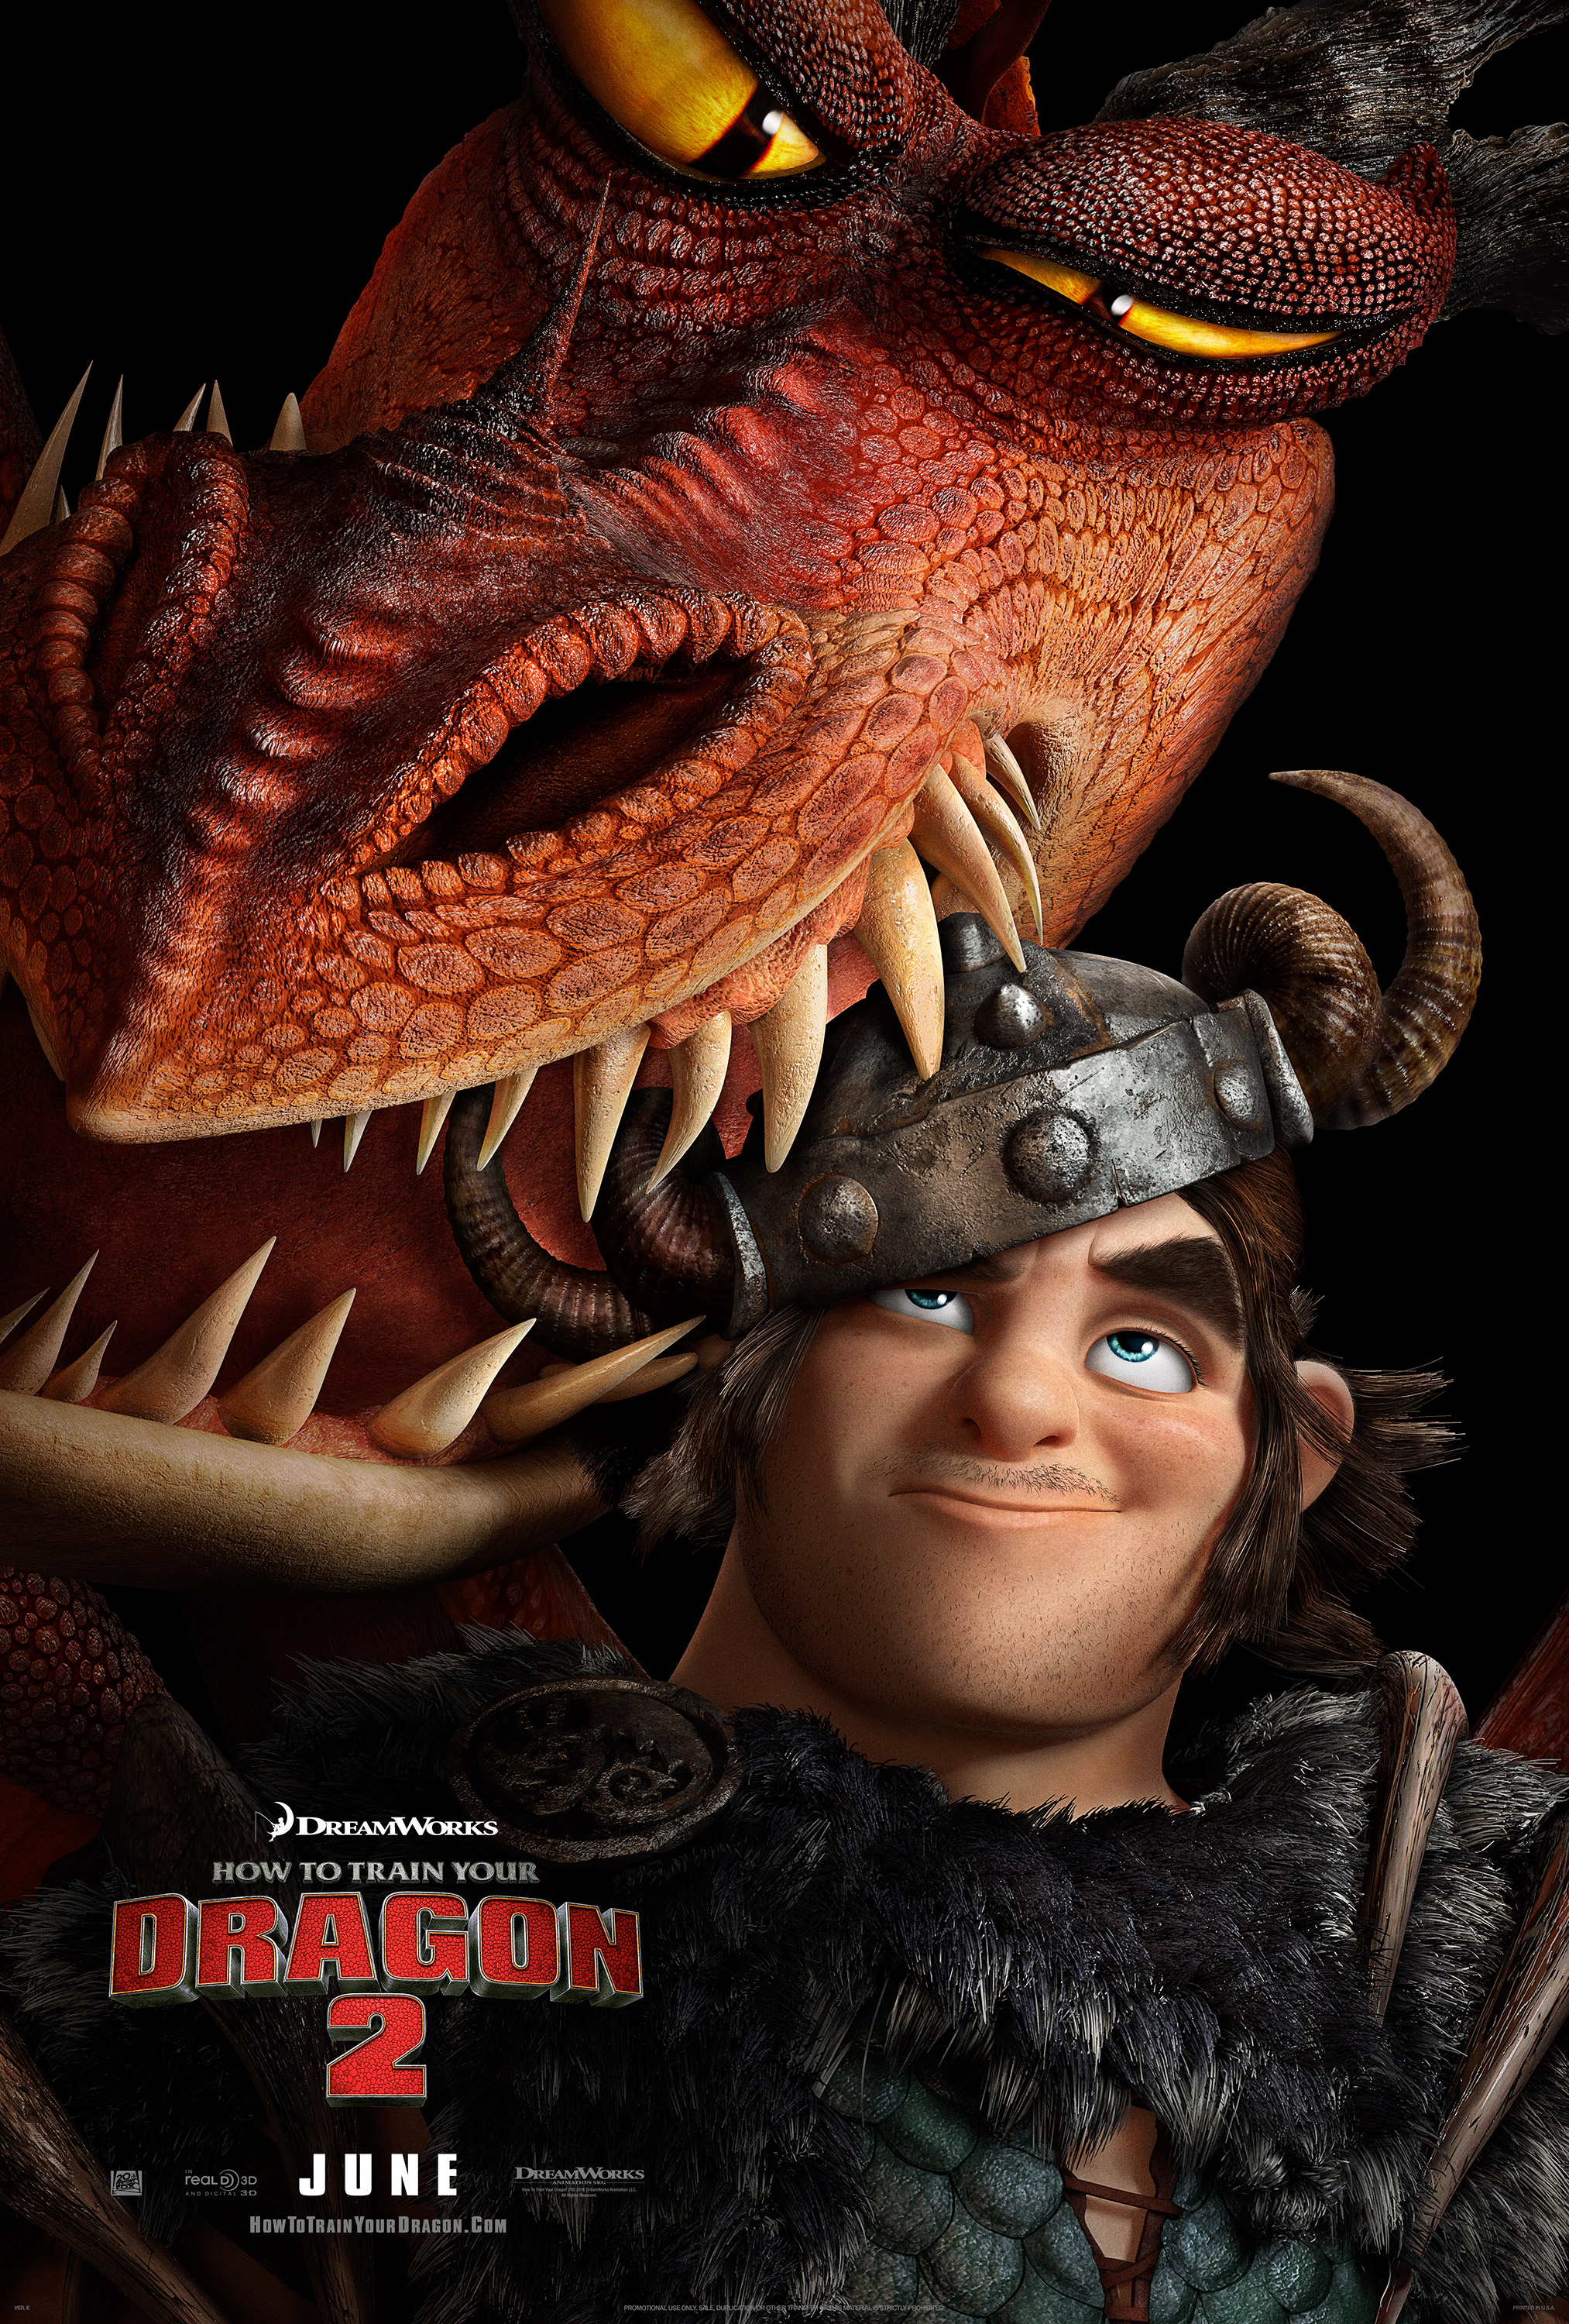 Snotlout And Hookfang From How To Train Your Dragon 2 Desktop